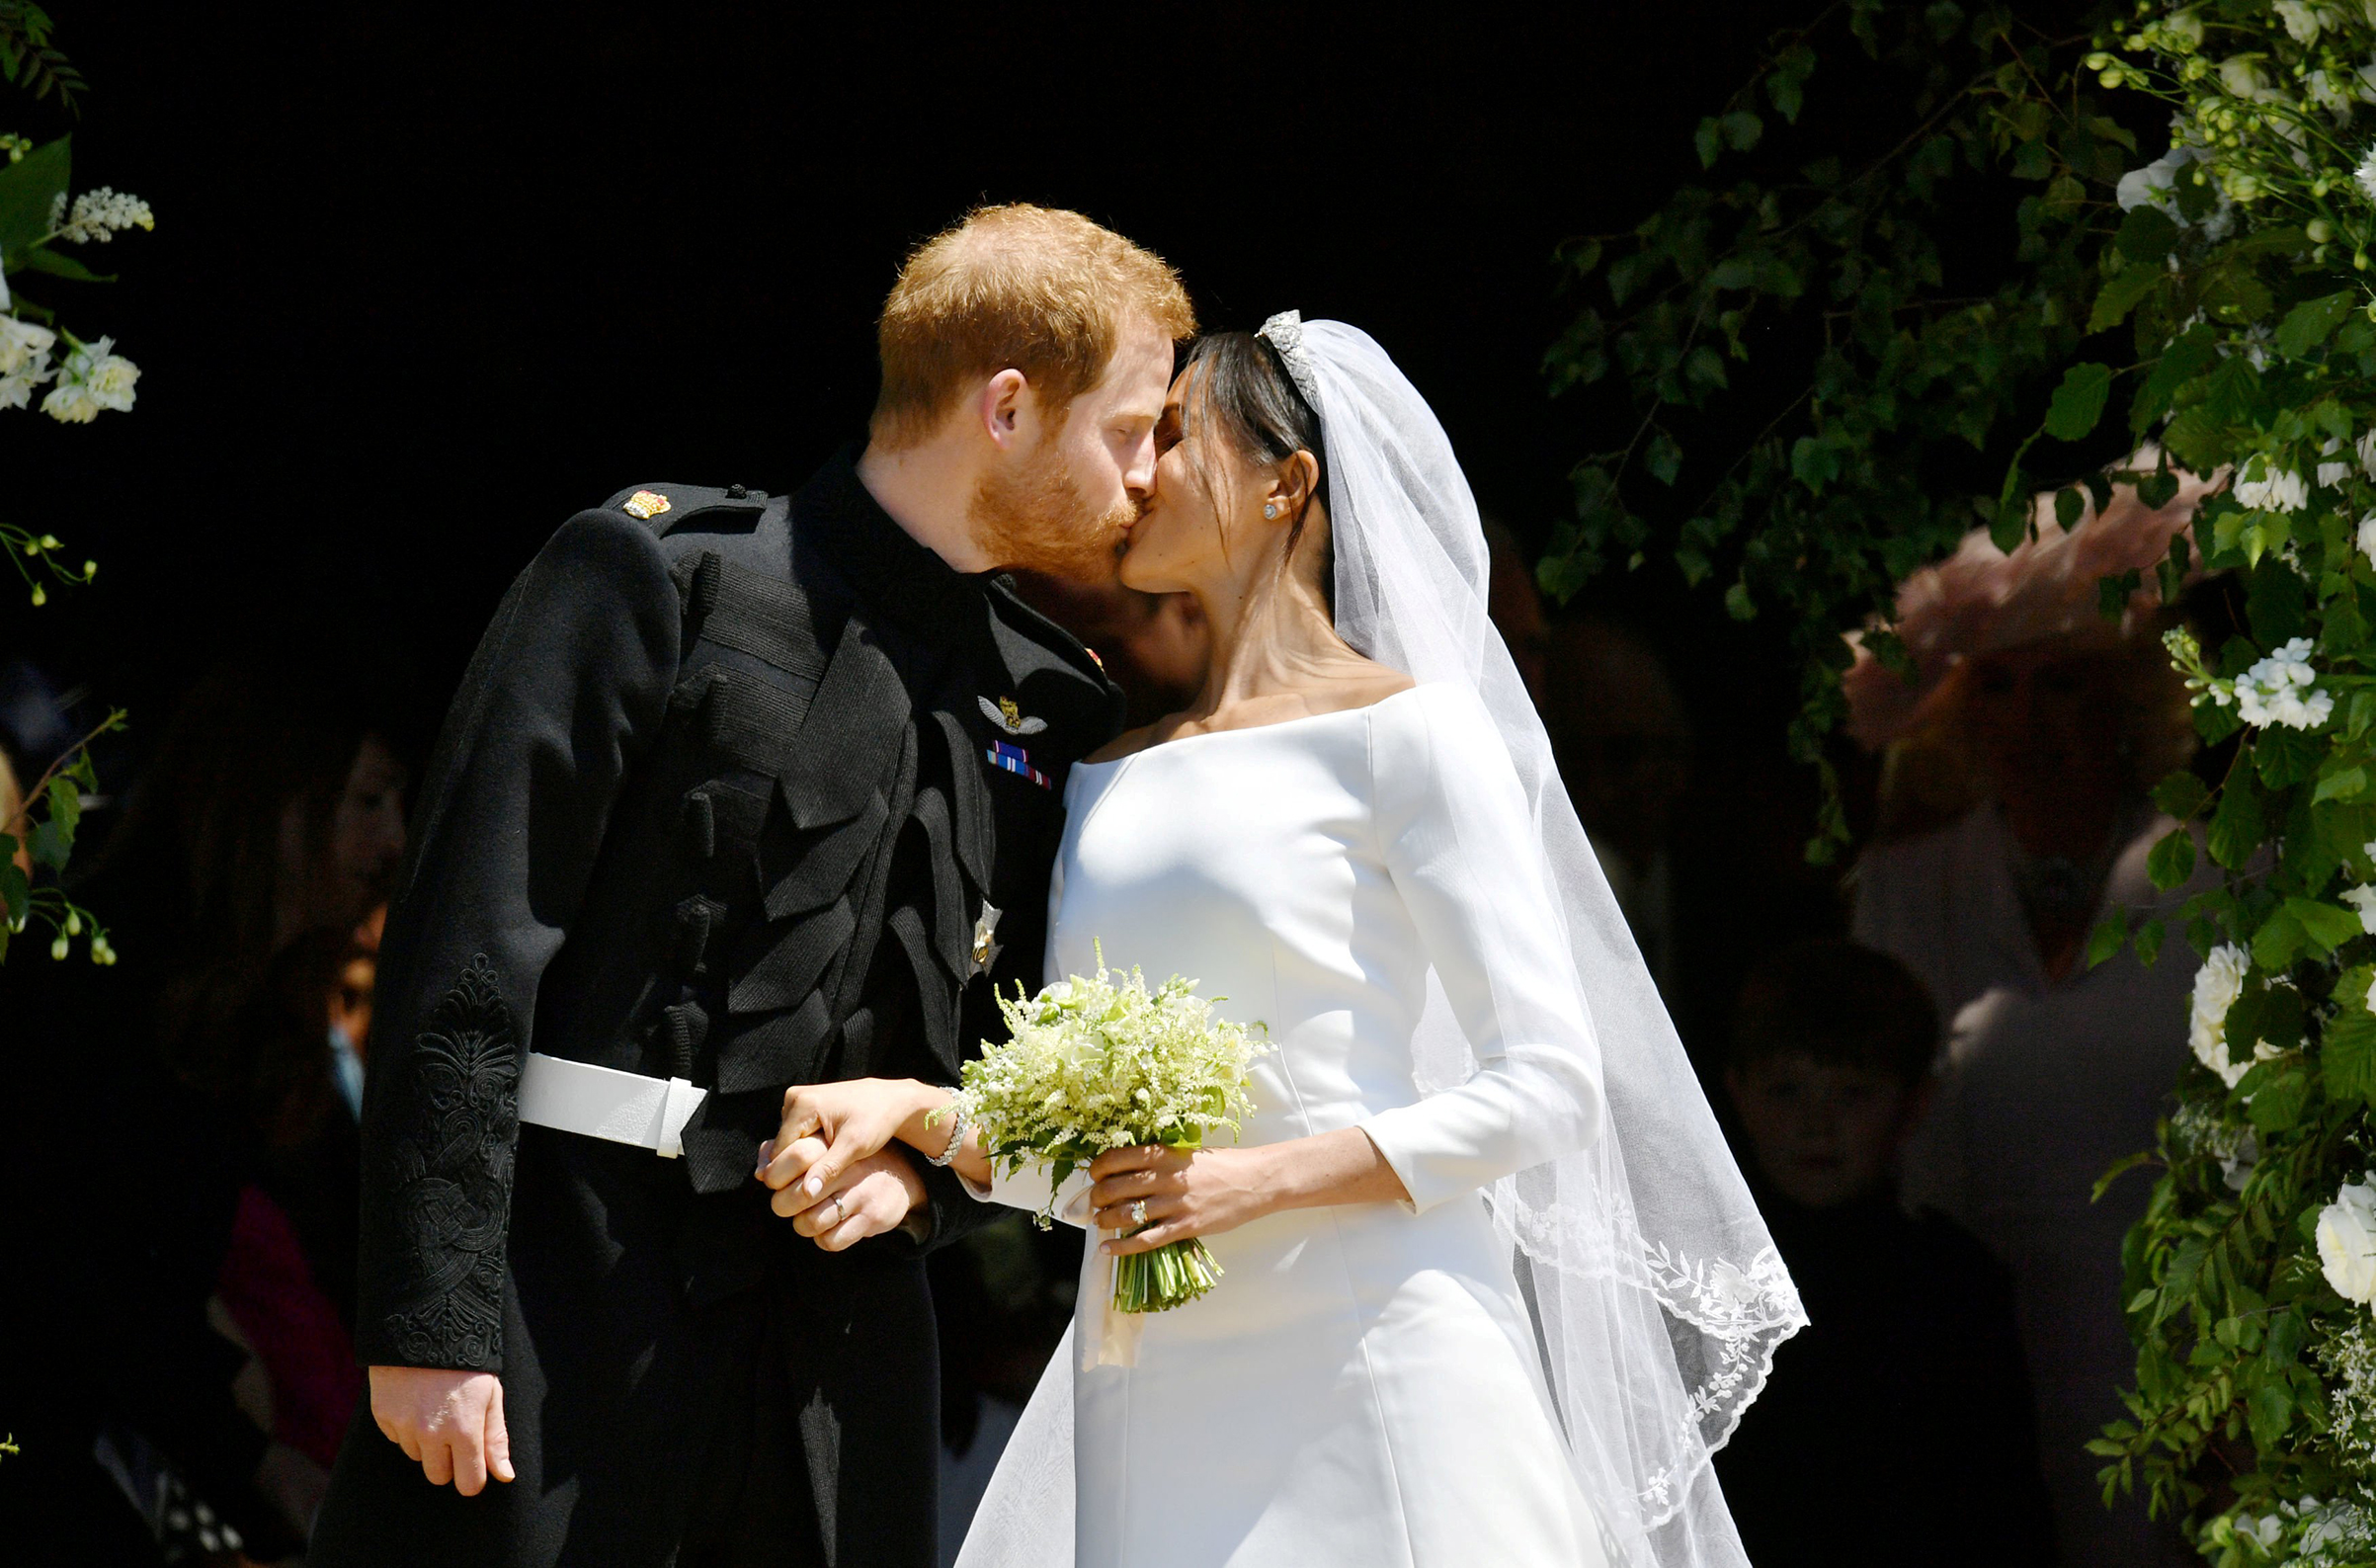 Prince Harry and Meghan Markle kiss on the steps of St George's Chapel in Windsor Castle after their wedding, May 19, 2018.